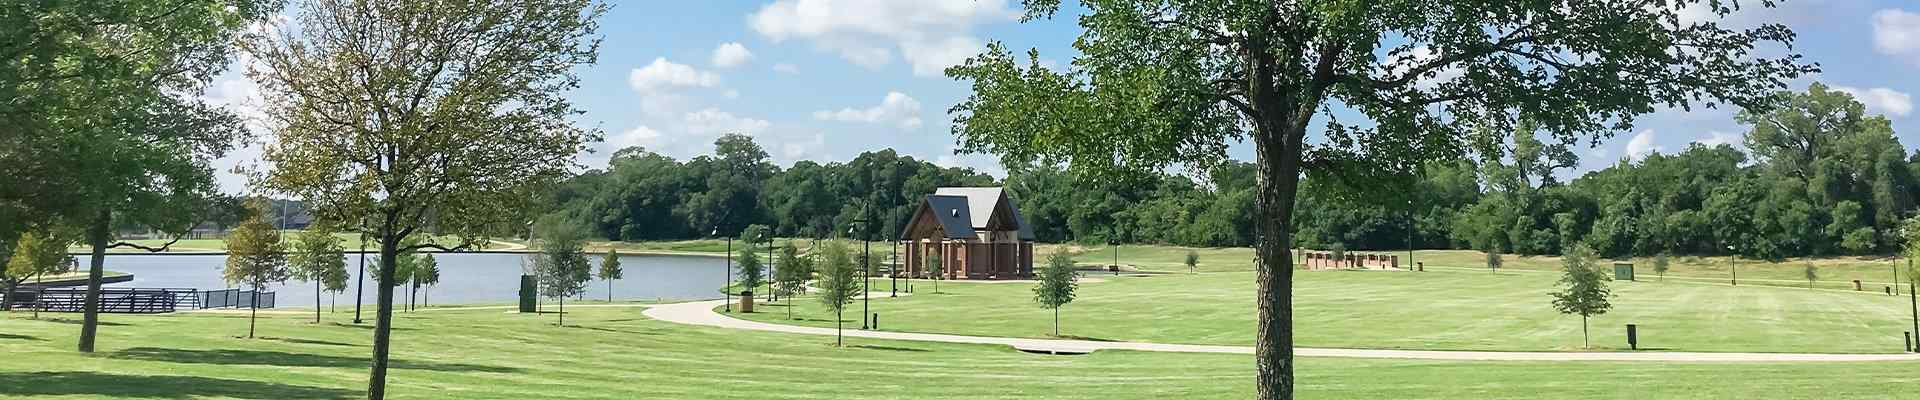 view of a park in coppell texas